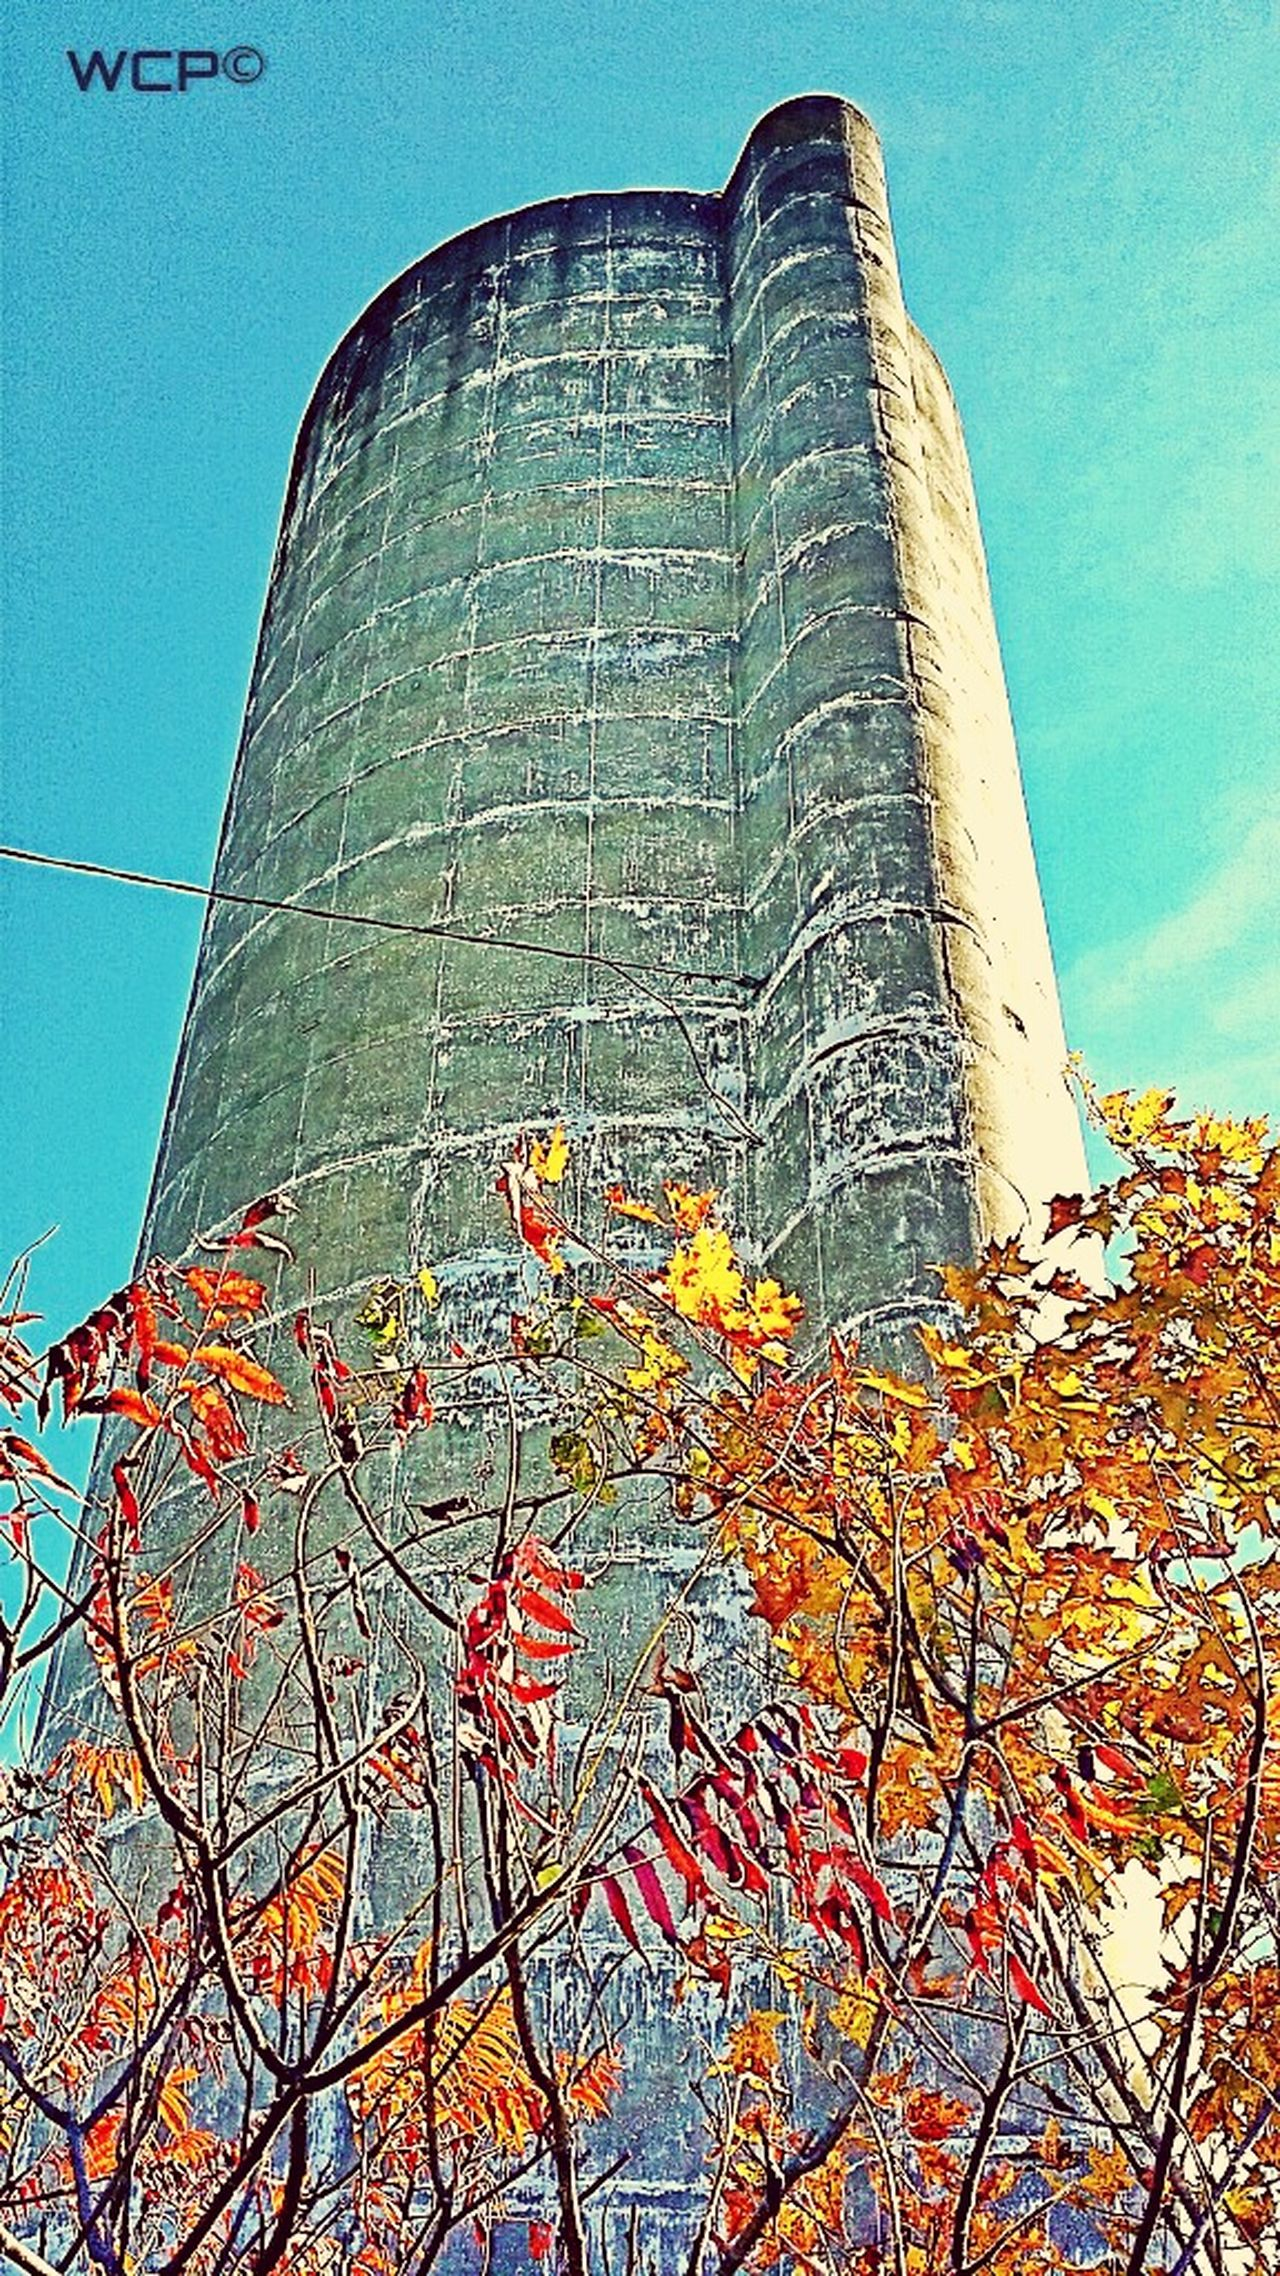 Mexicony Upstateny Country Life Silo Autumn 2015 Exploring Nature Taking A Drive Hdrphotography